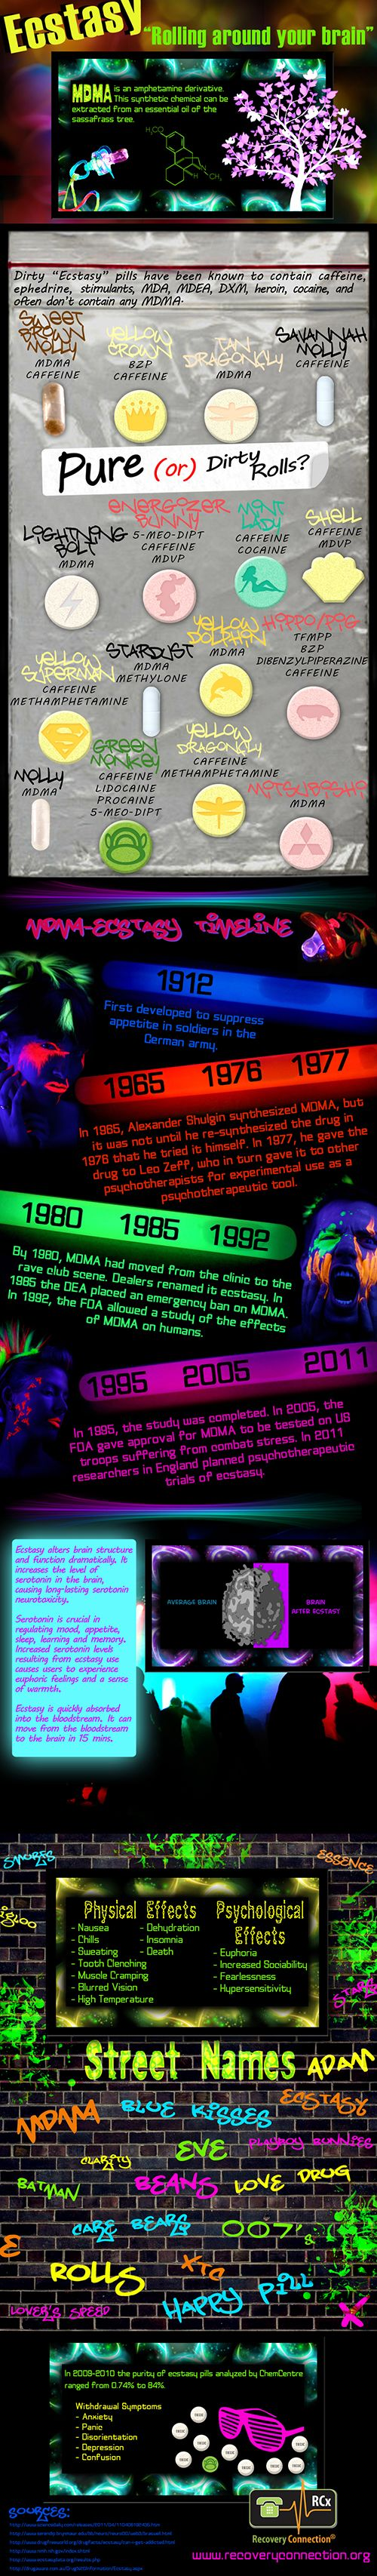 a history of mdma History of mdma in 1912, the german chemical company, merck, synthesized mdma the patent was filed in 1912 and accepted in 1914, which included mdma.